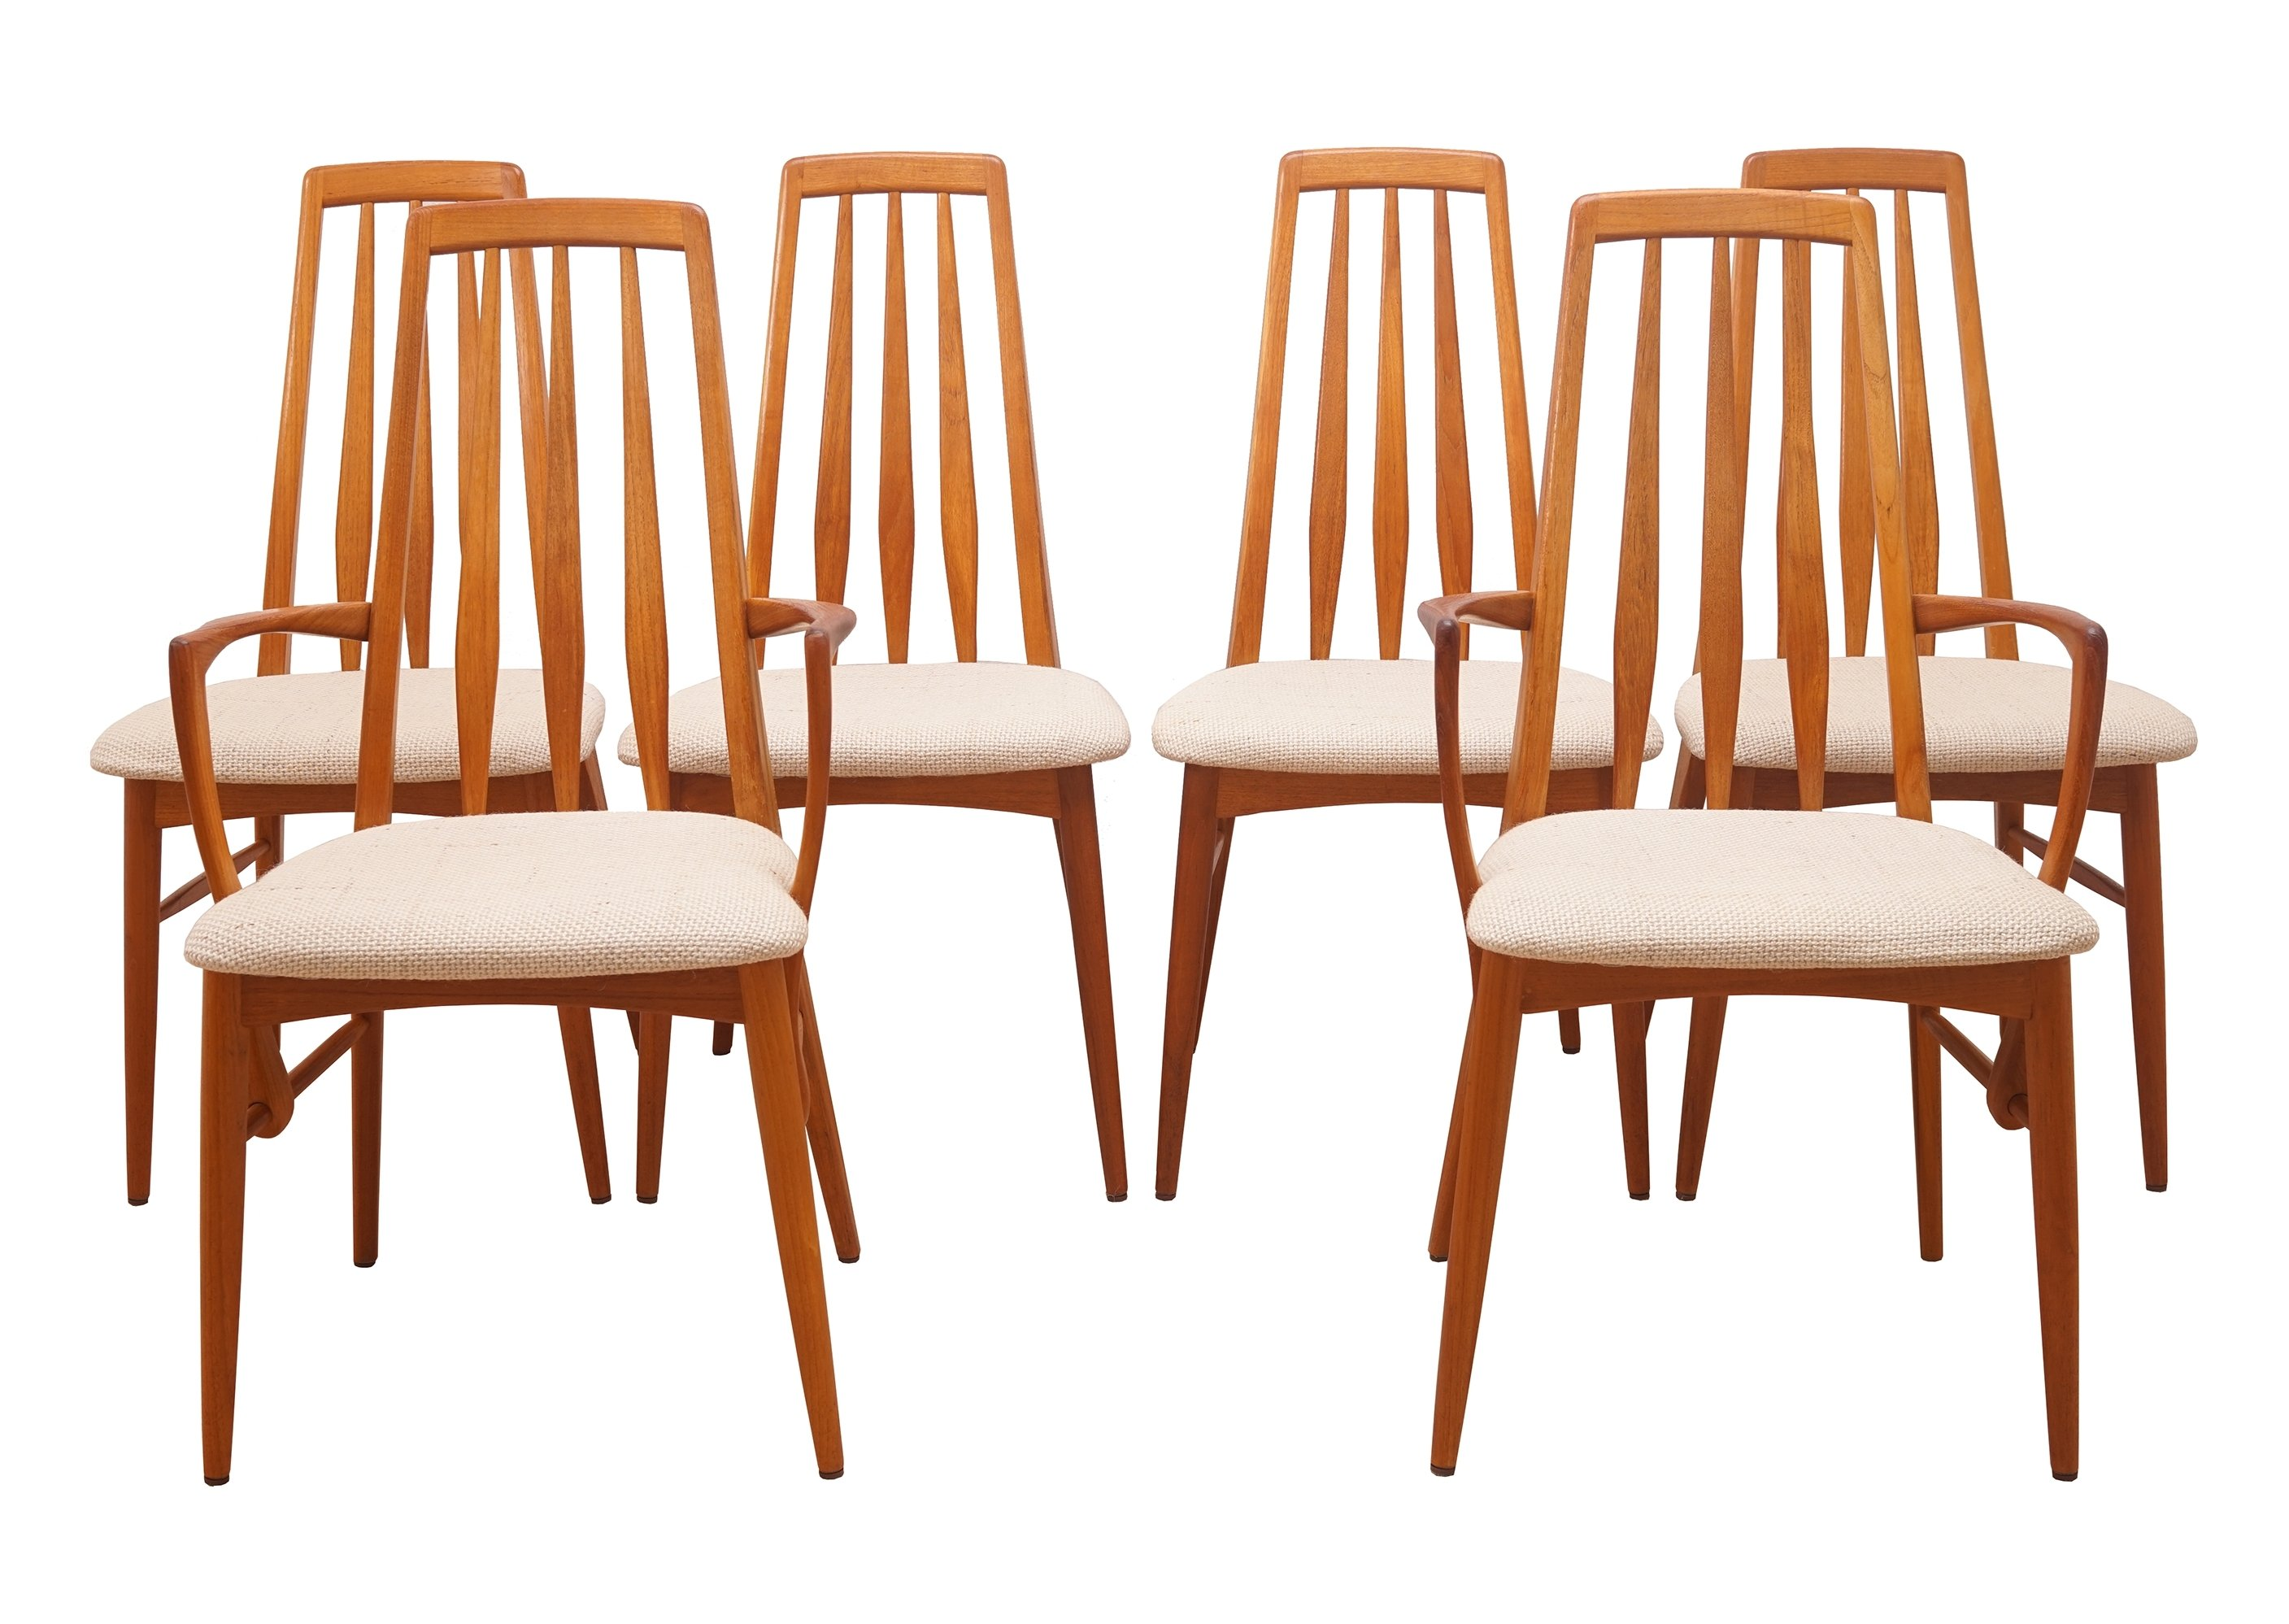 Pleasant Eva Dining Chairs By Niels Koefoed Set Of 6 Creativecarmelina Interior Chair Design Creativecarmelinacom